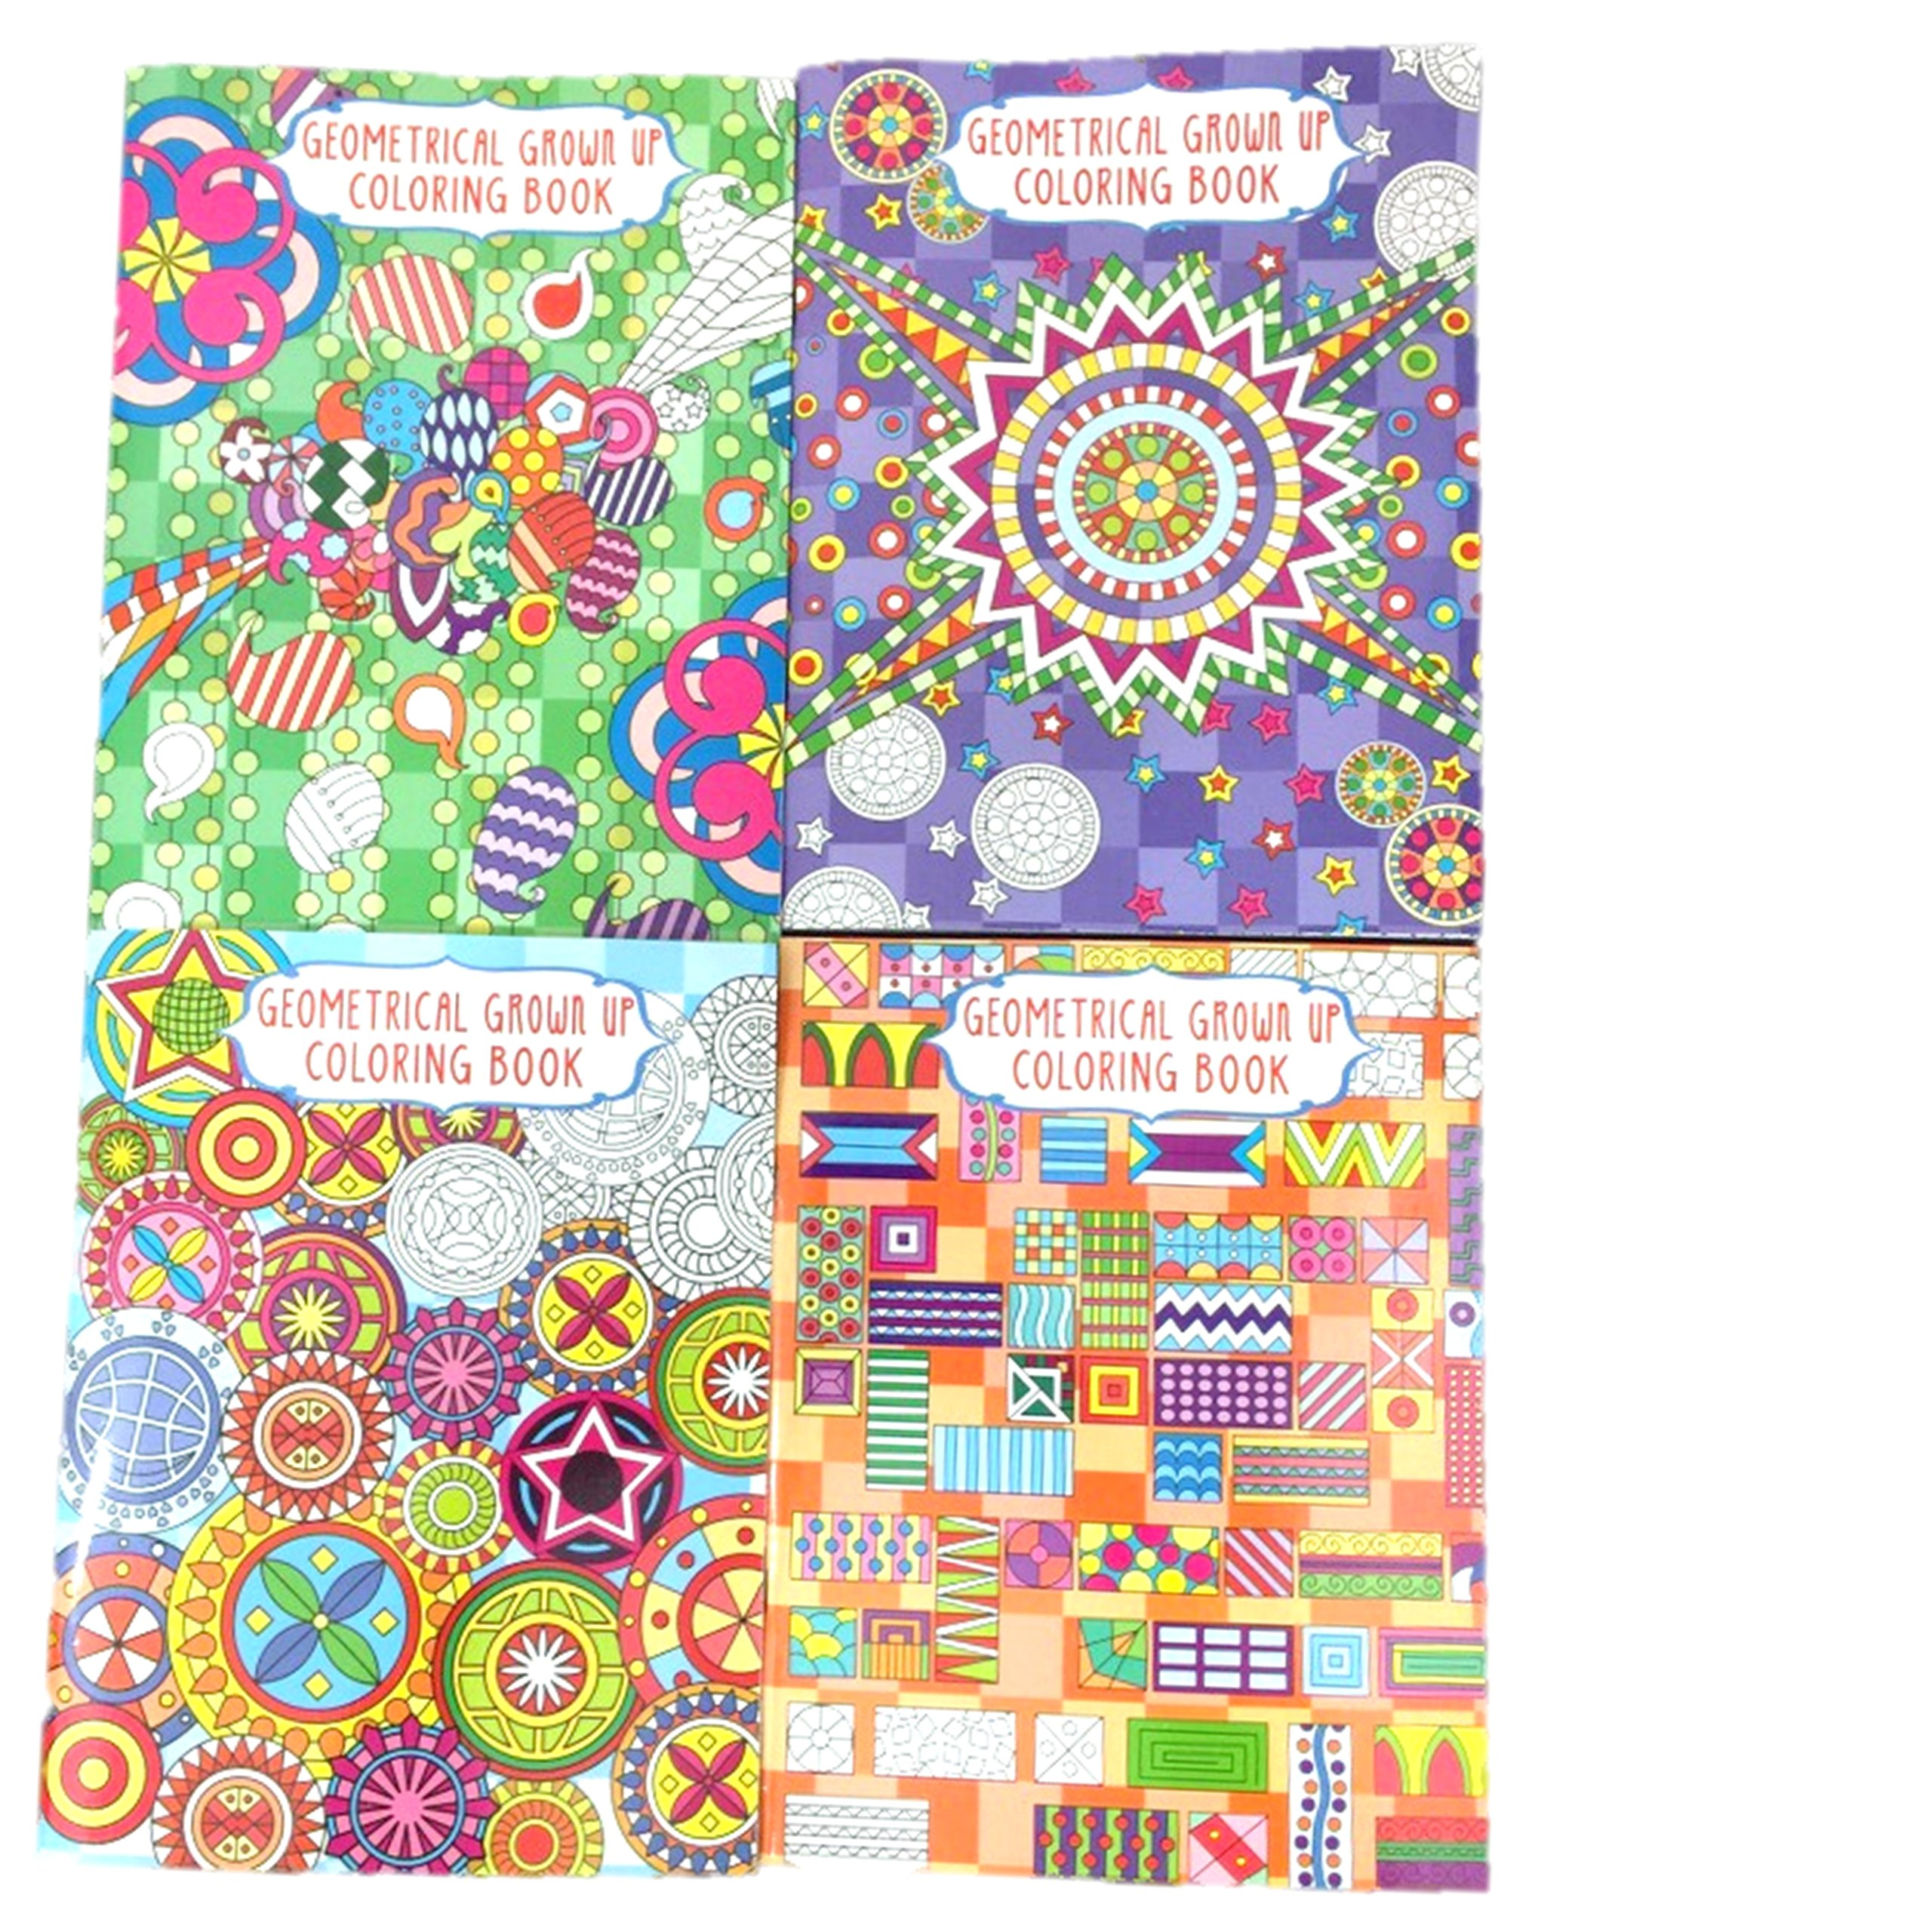 Geometrical Grown Up Coloring Book - Set of 4: 0814625015864 ...